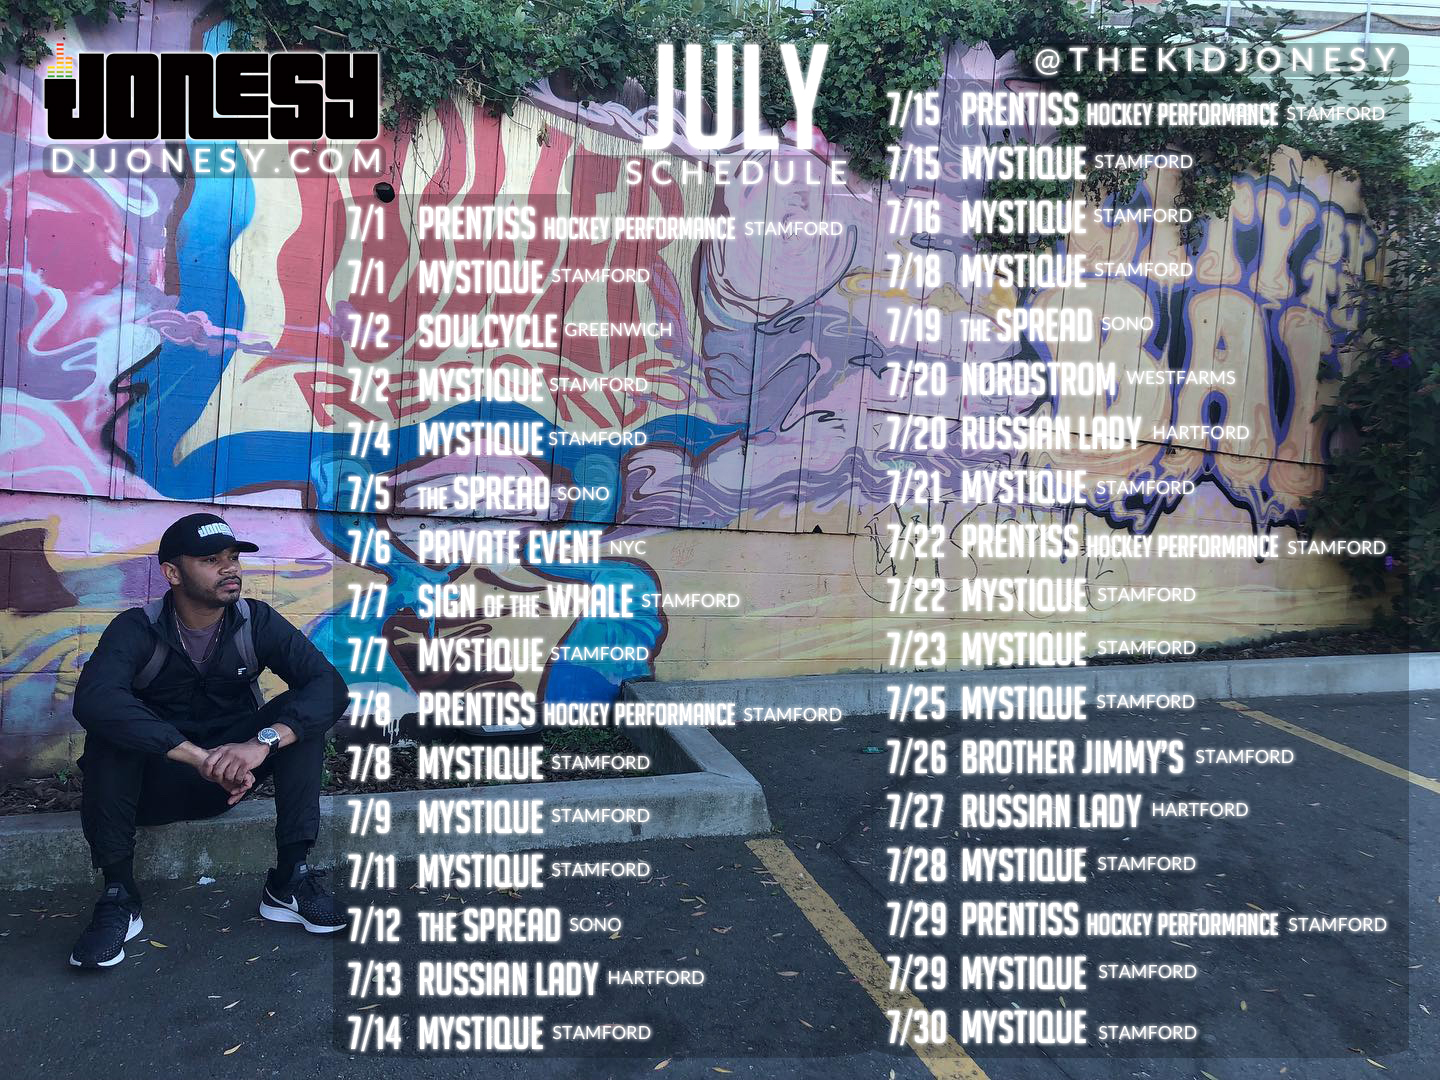 JONESY-JULY2019-SCHEDULE.jpg